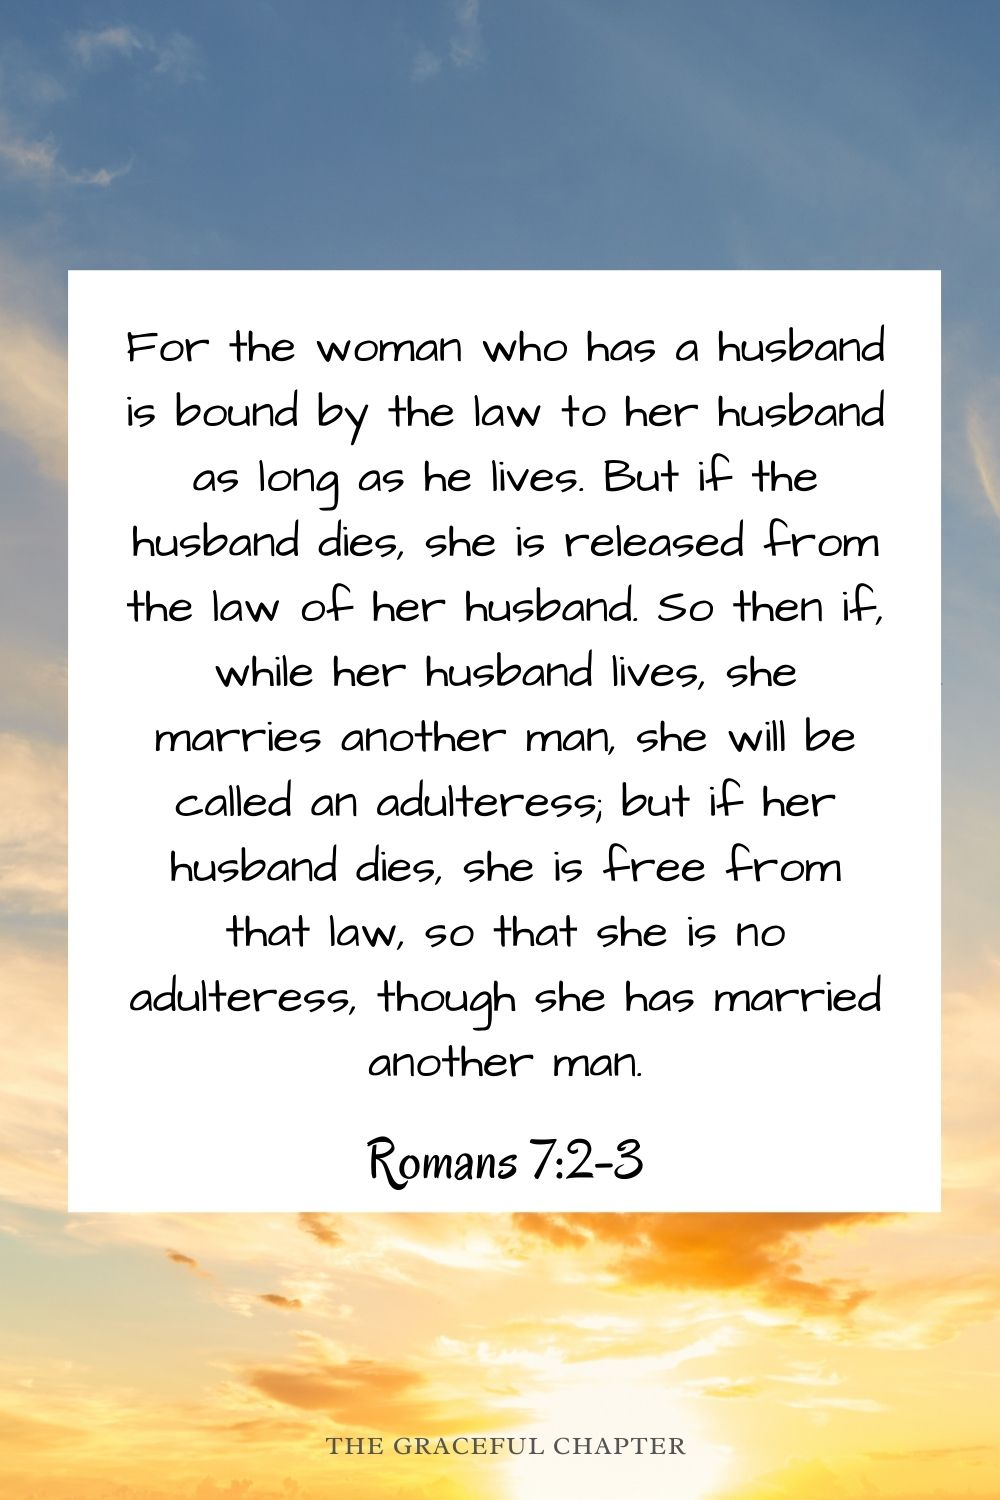 For the woman who has a husband is bound by the law to her husband as long as he lives. But if the husband dies, she is released from the law of her husband. So then if, while her husband lives, she marries another man, she will be called an adulteress; but if her husband dies, she is free from that law, so that she is no adulteress, though she has married another man. Romans 7:2-3